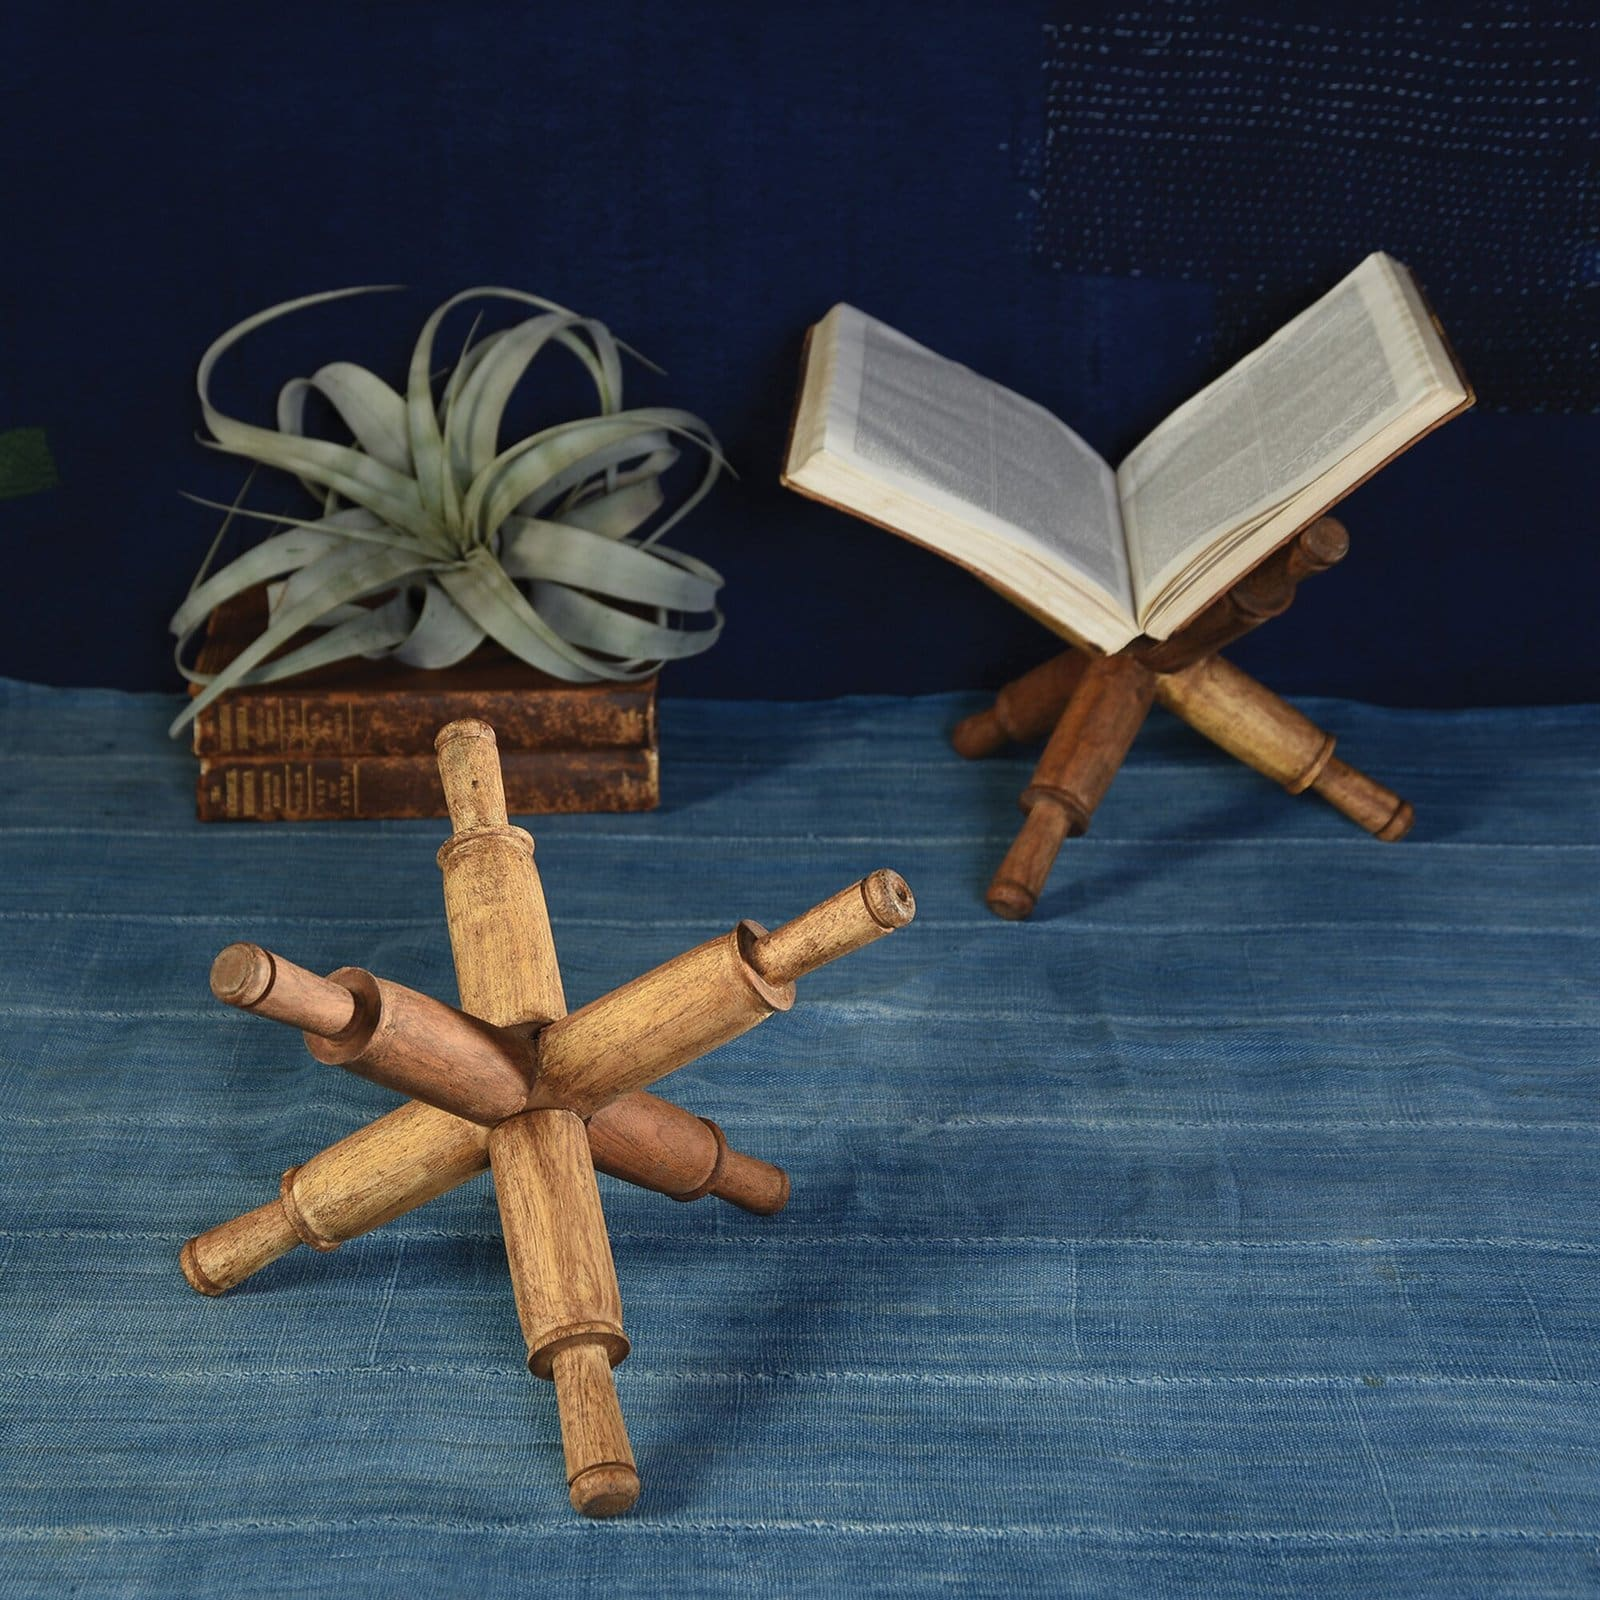 Give your Favourite Book a Home with this Wooden Stand